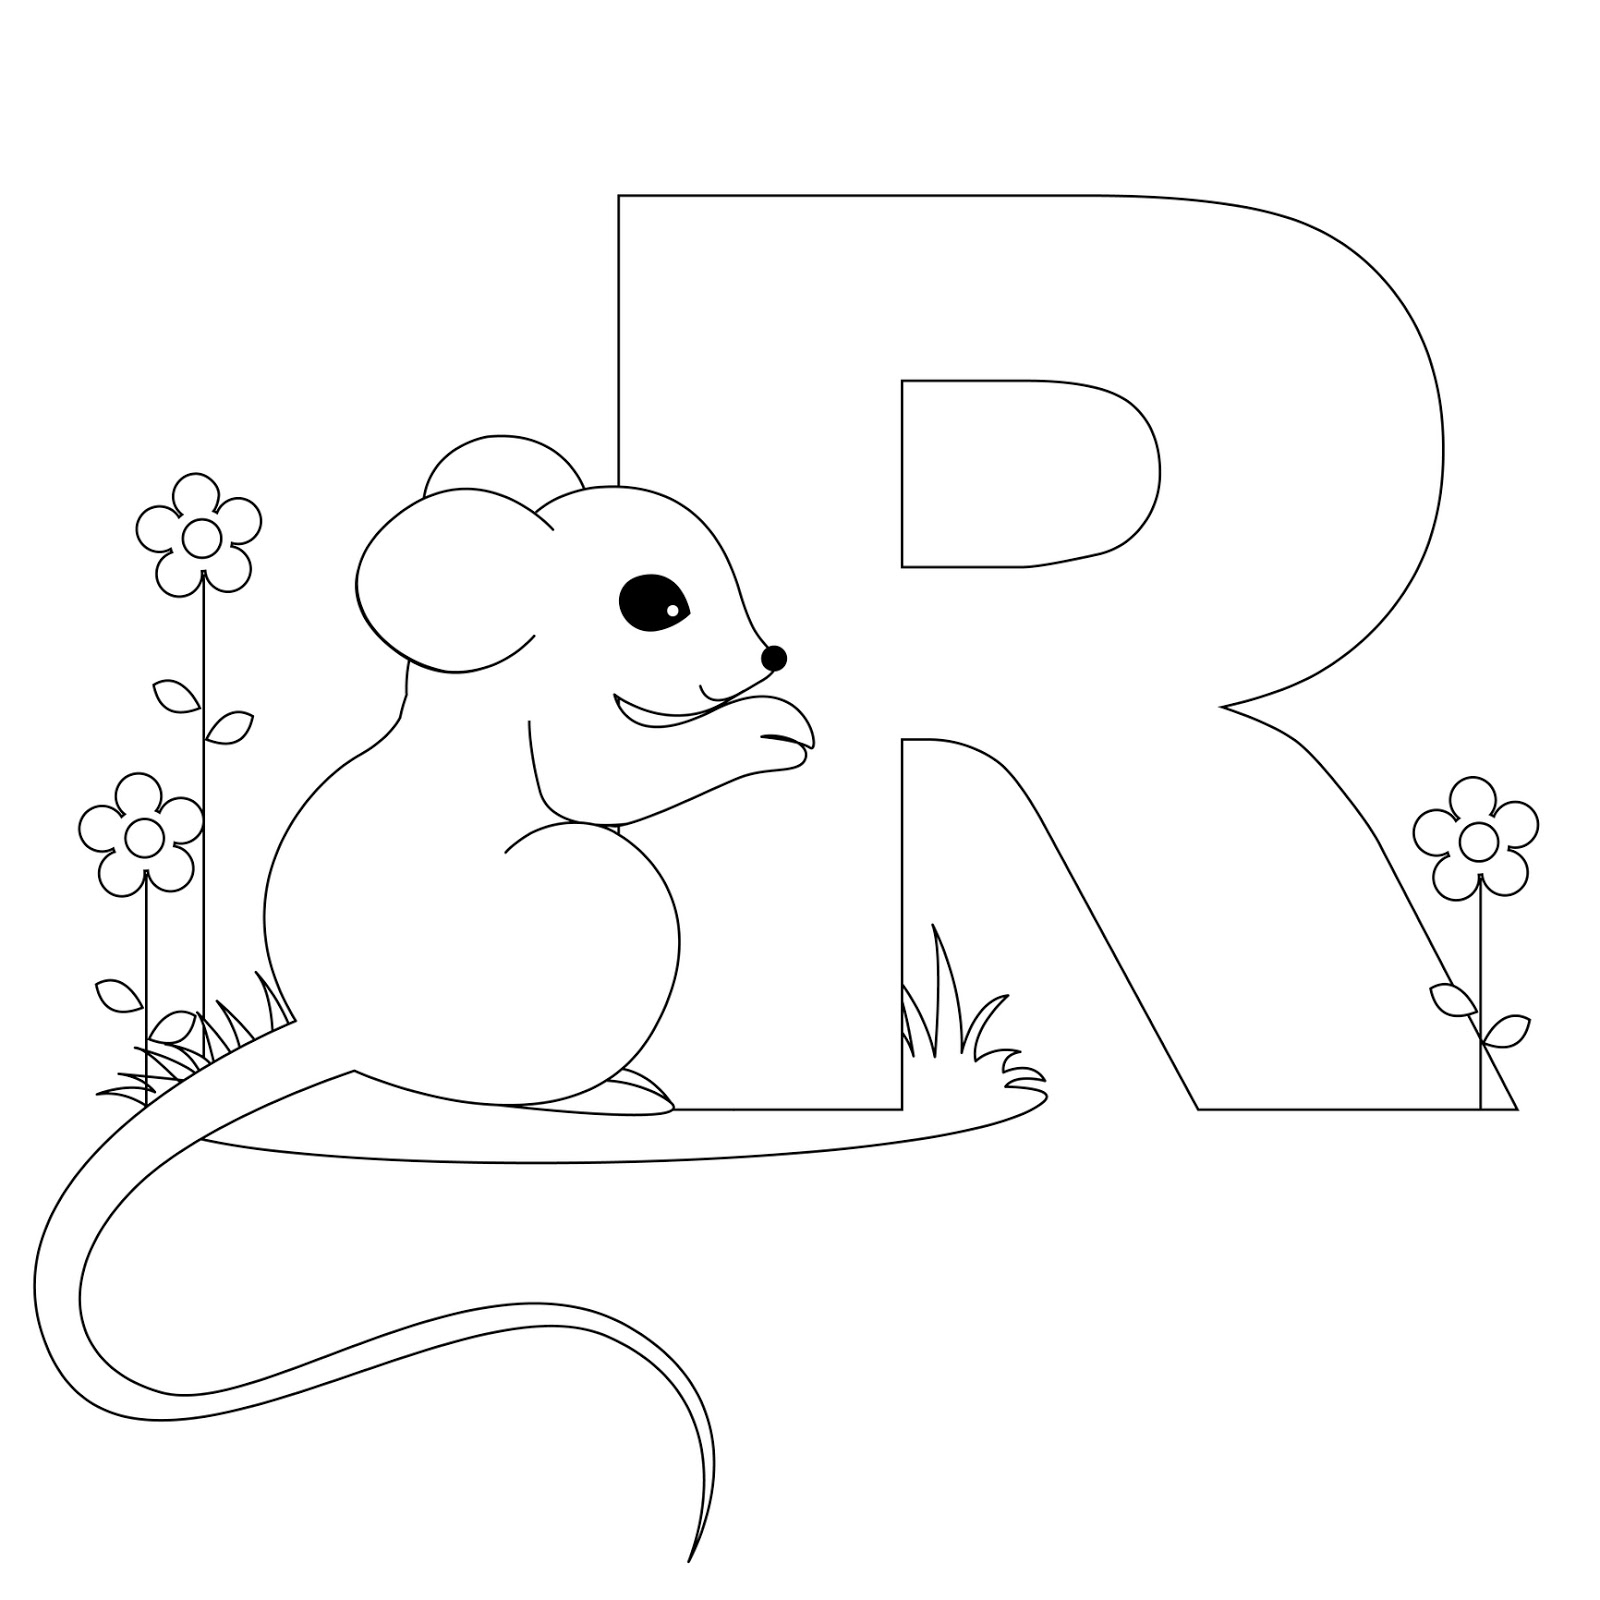 animal alphabet colouring pages coloring pages for kids animal alphabet coloring pages alphabet colouring animal pages